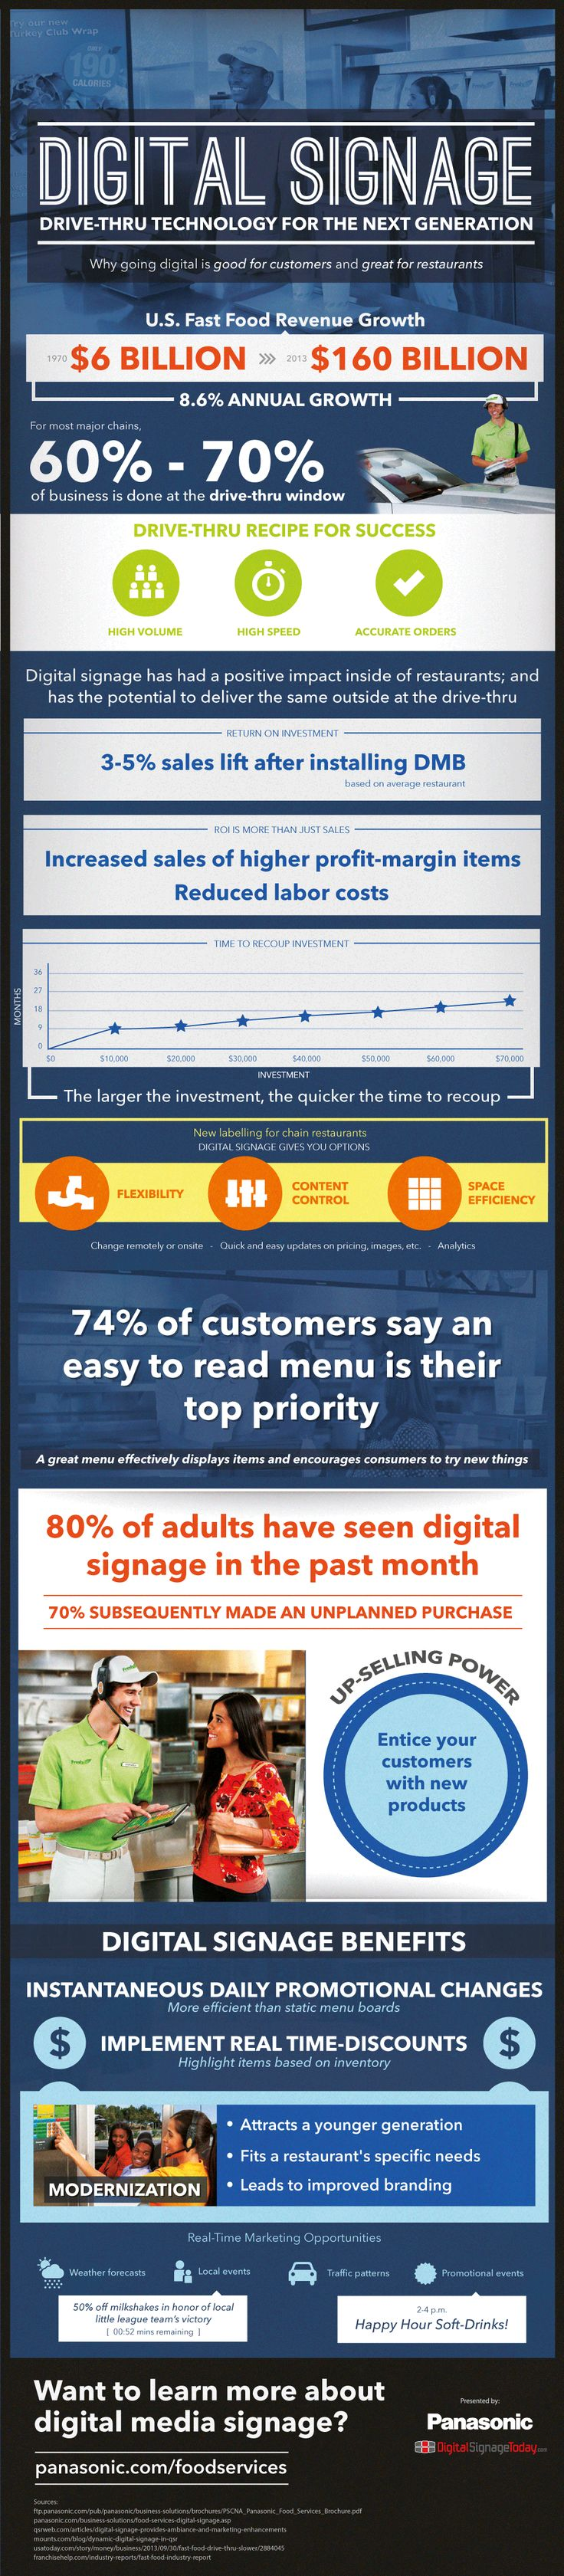 Digital Signage - Drive-Thru Technology For the Next Generation [Infographic] It's time to rethink signage. #NerdMentor